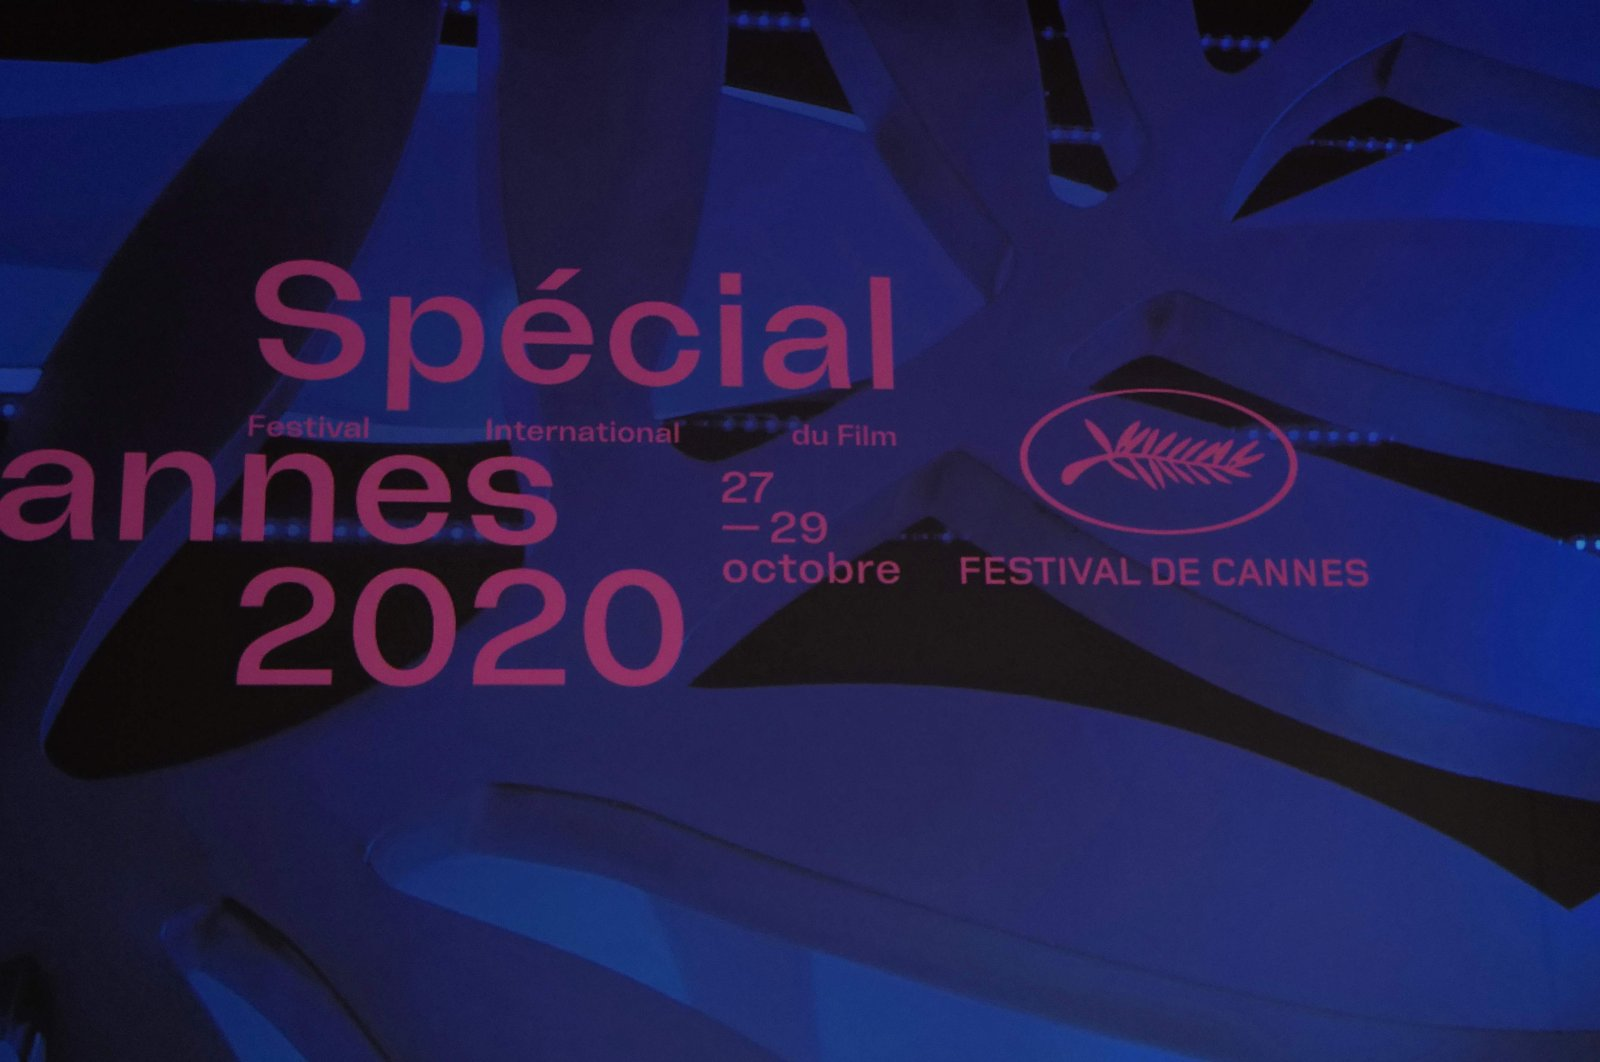 Cannes Film Festival general delegate Thierry Fremaux speaks as he presents Cannes 2020 Special, a mini-version of the Cannes Film Festival at the Palais des Festivals et des Congres in Cannes, southeastern France, on Oct. 27, 2020. (AFP PHOTO)